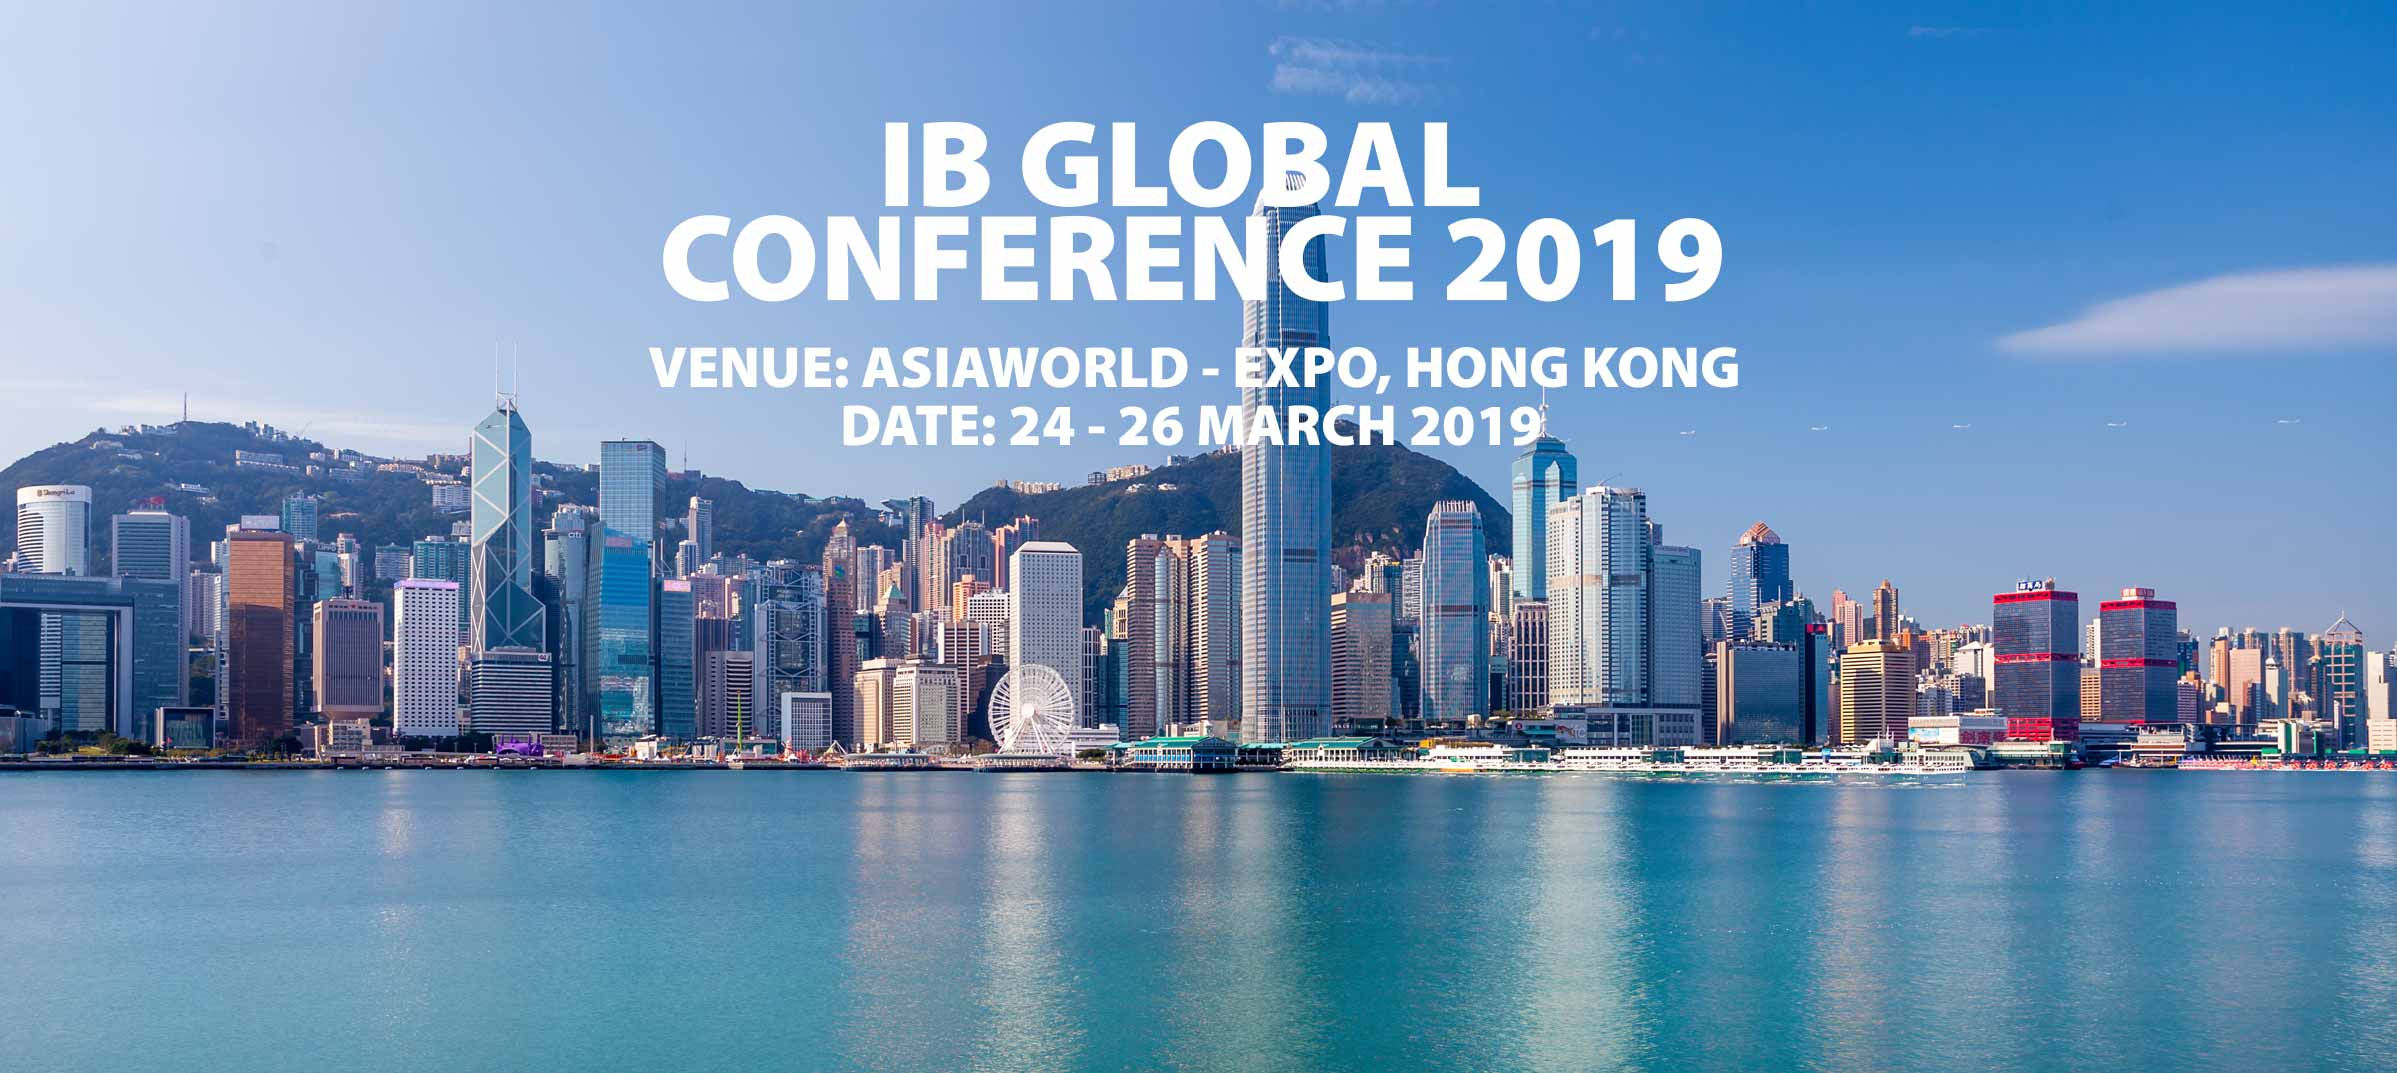 IB Global Conference, Hong Kong, 24-26 March 2019